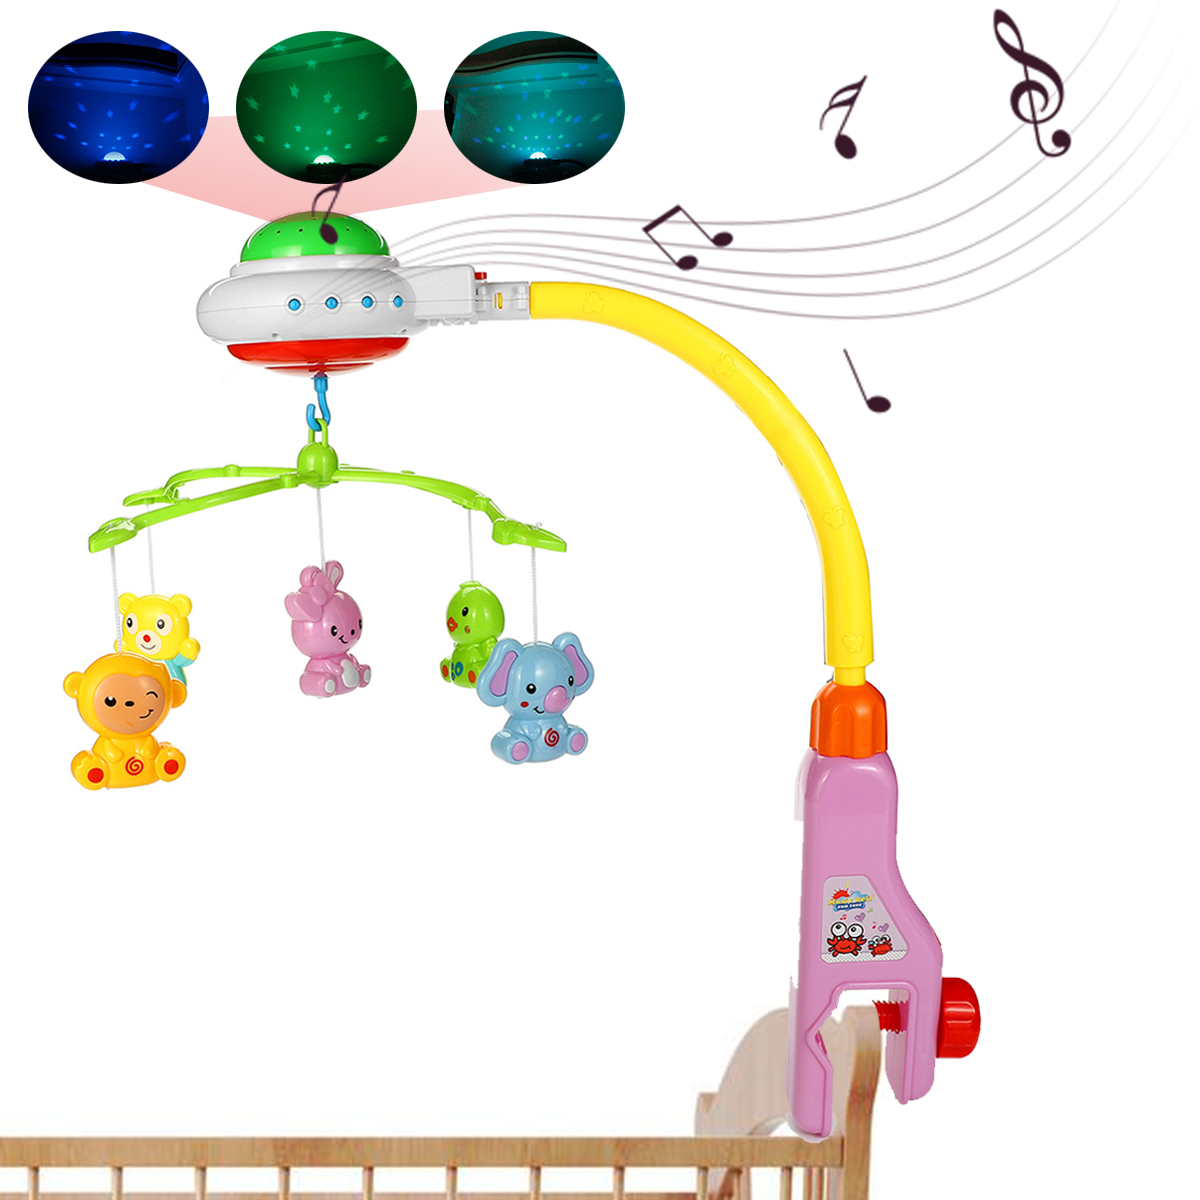 Baby Rattles & Mobiles Nice Projection Light Baby Crib Mobile Bed Bell Rattle Toys Wind Chimes Tent Hanging Decorations For Kids Newborn Gifts Nursery Decor